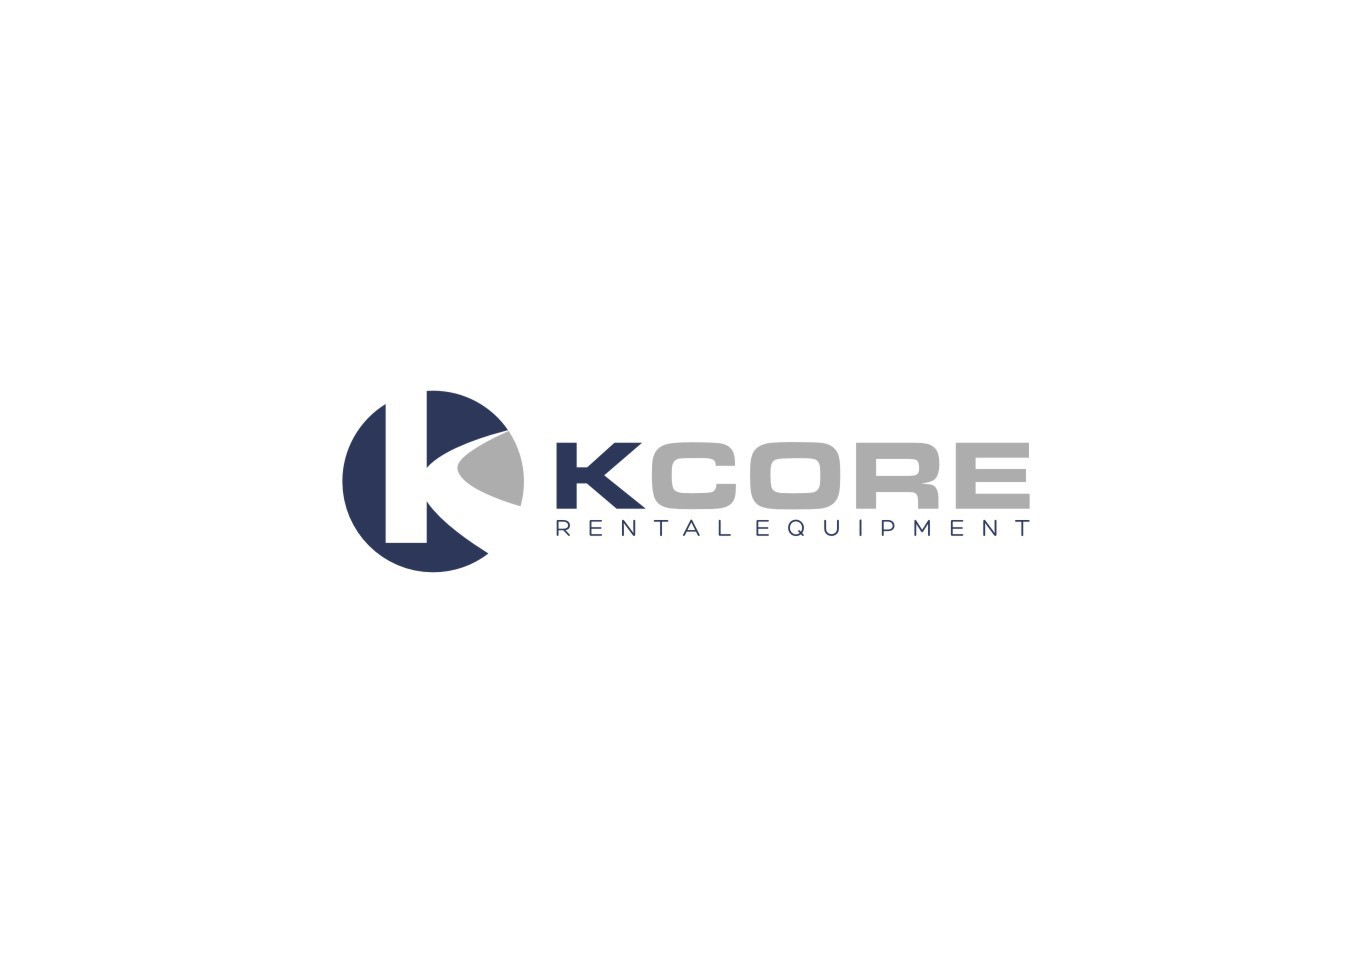 Capture the big machine feel in a classy logo for a new rental company, KCORE